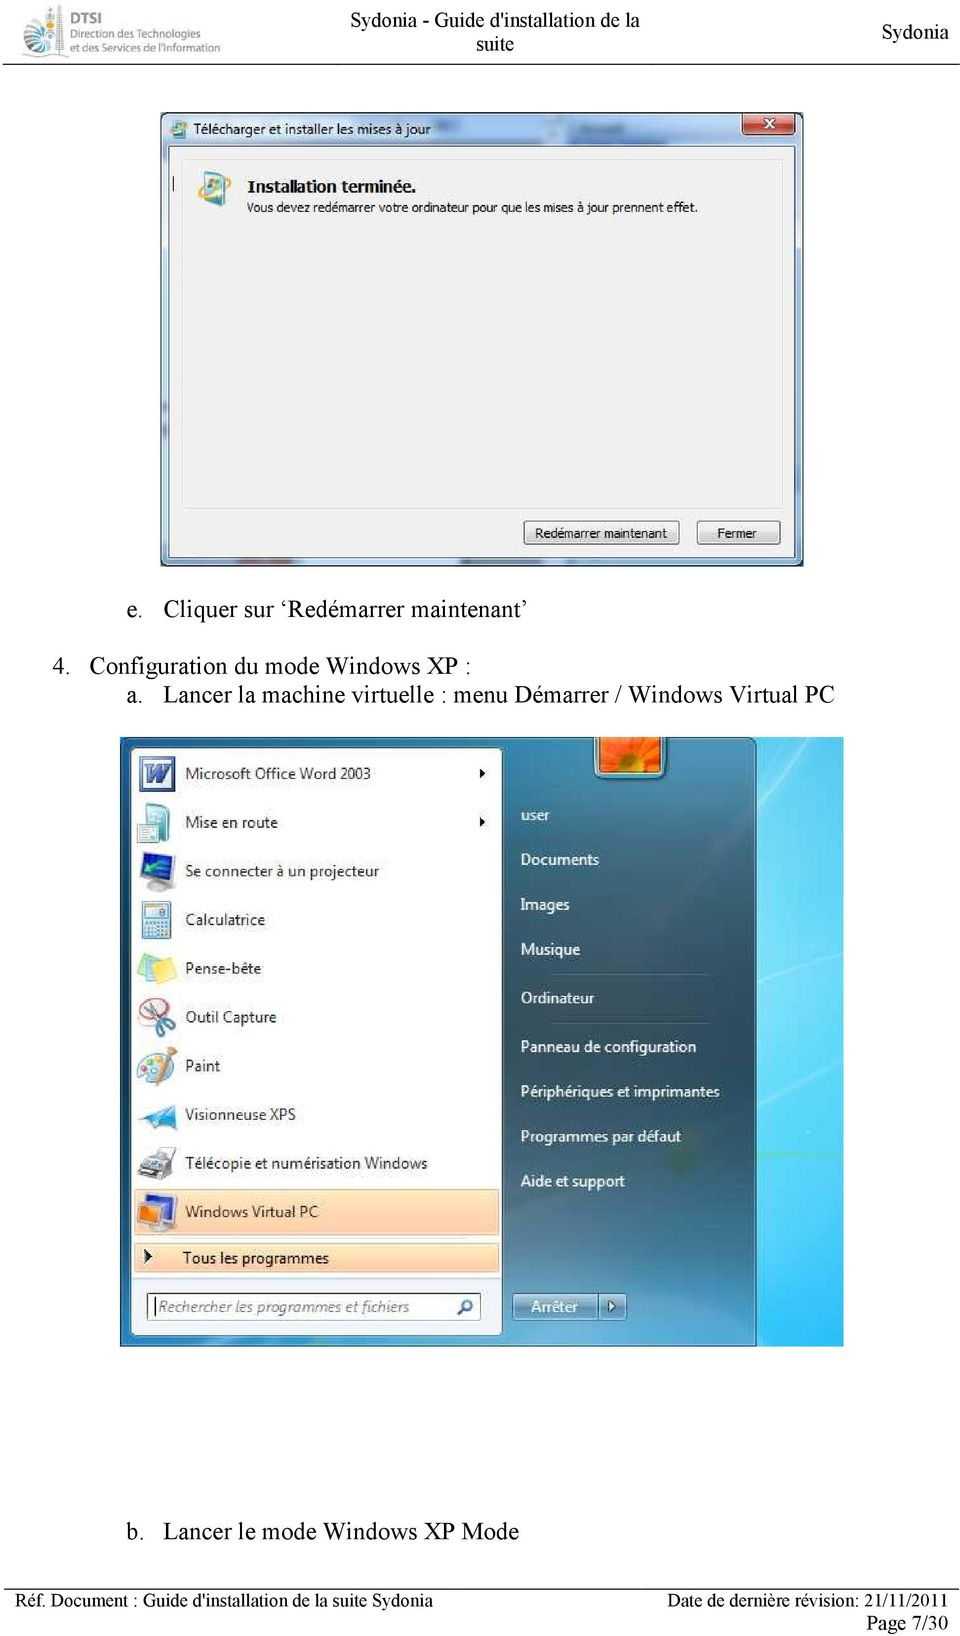 Lancer la machine virtuelle : menu Démarrer / Windows Virtual PC b.